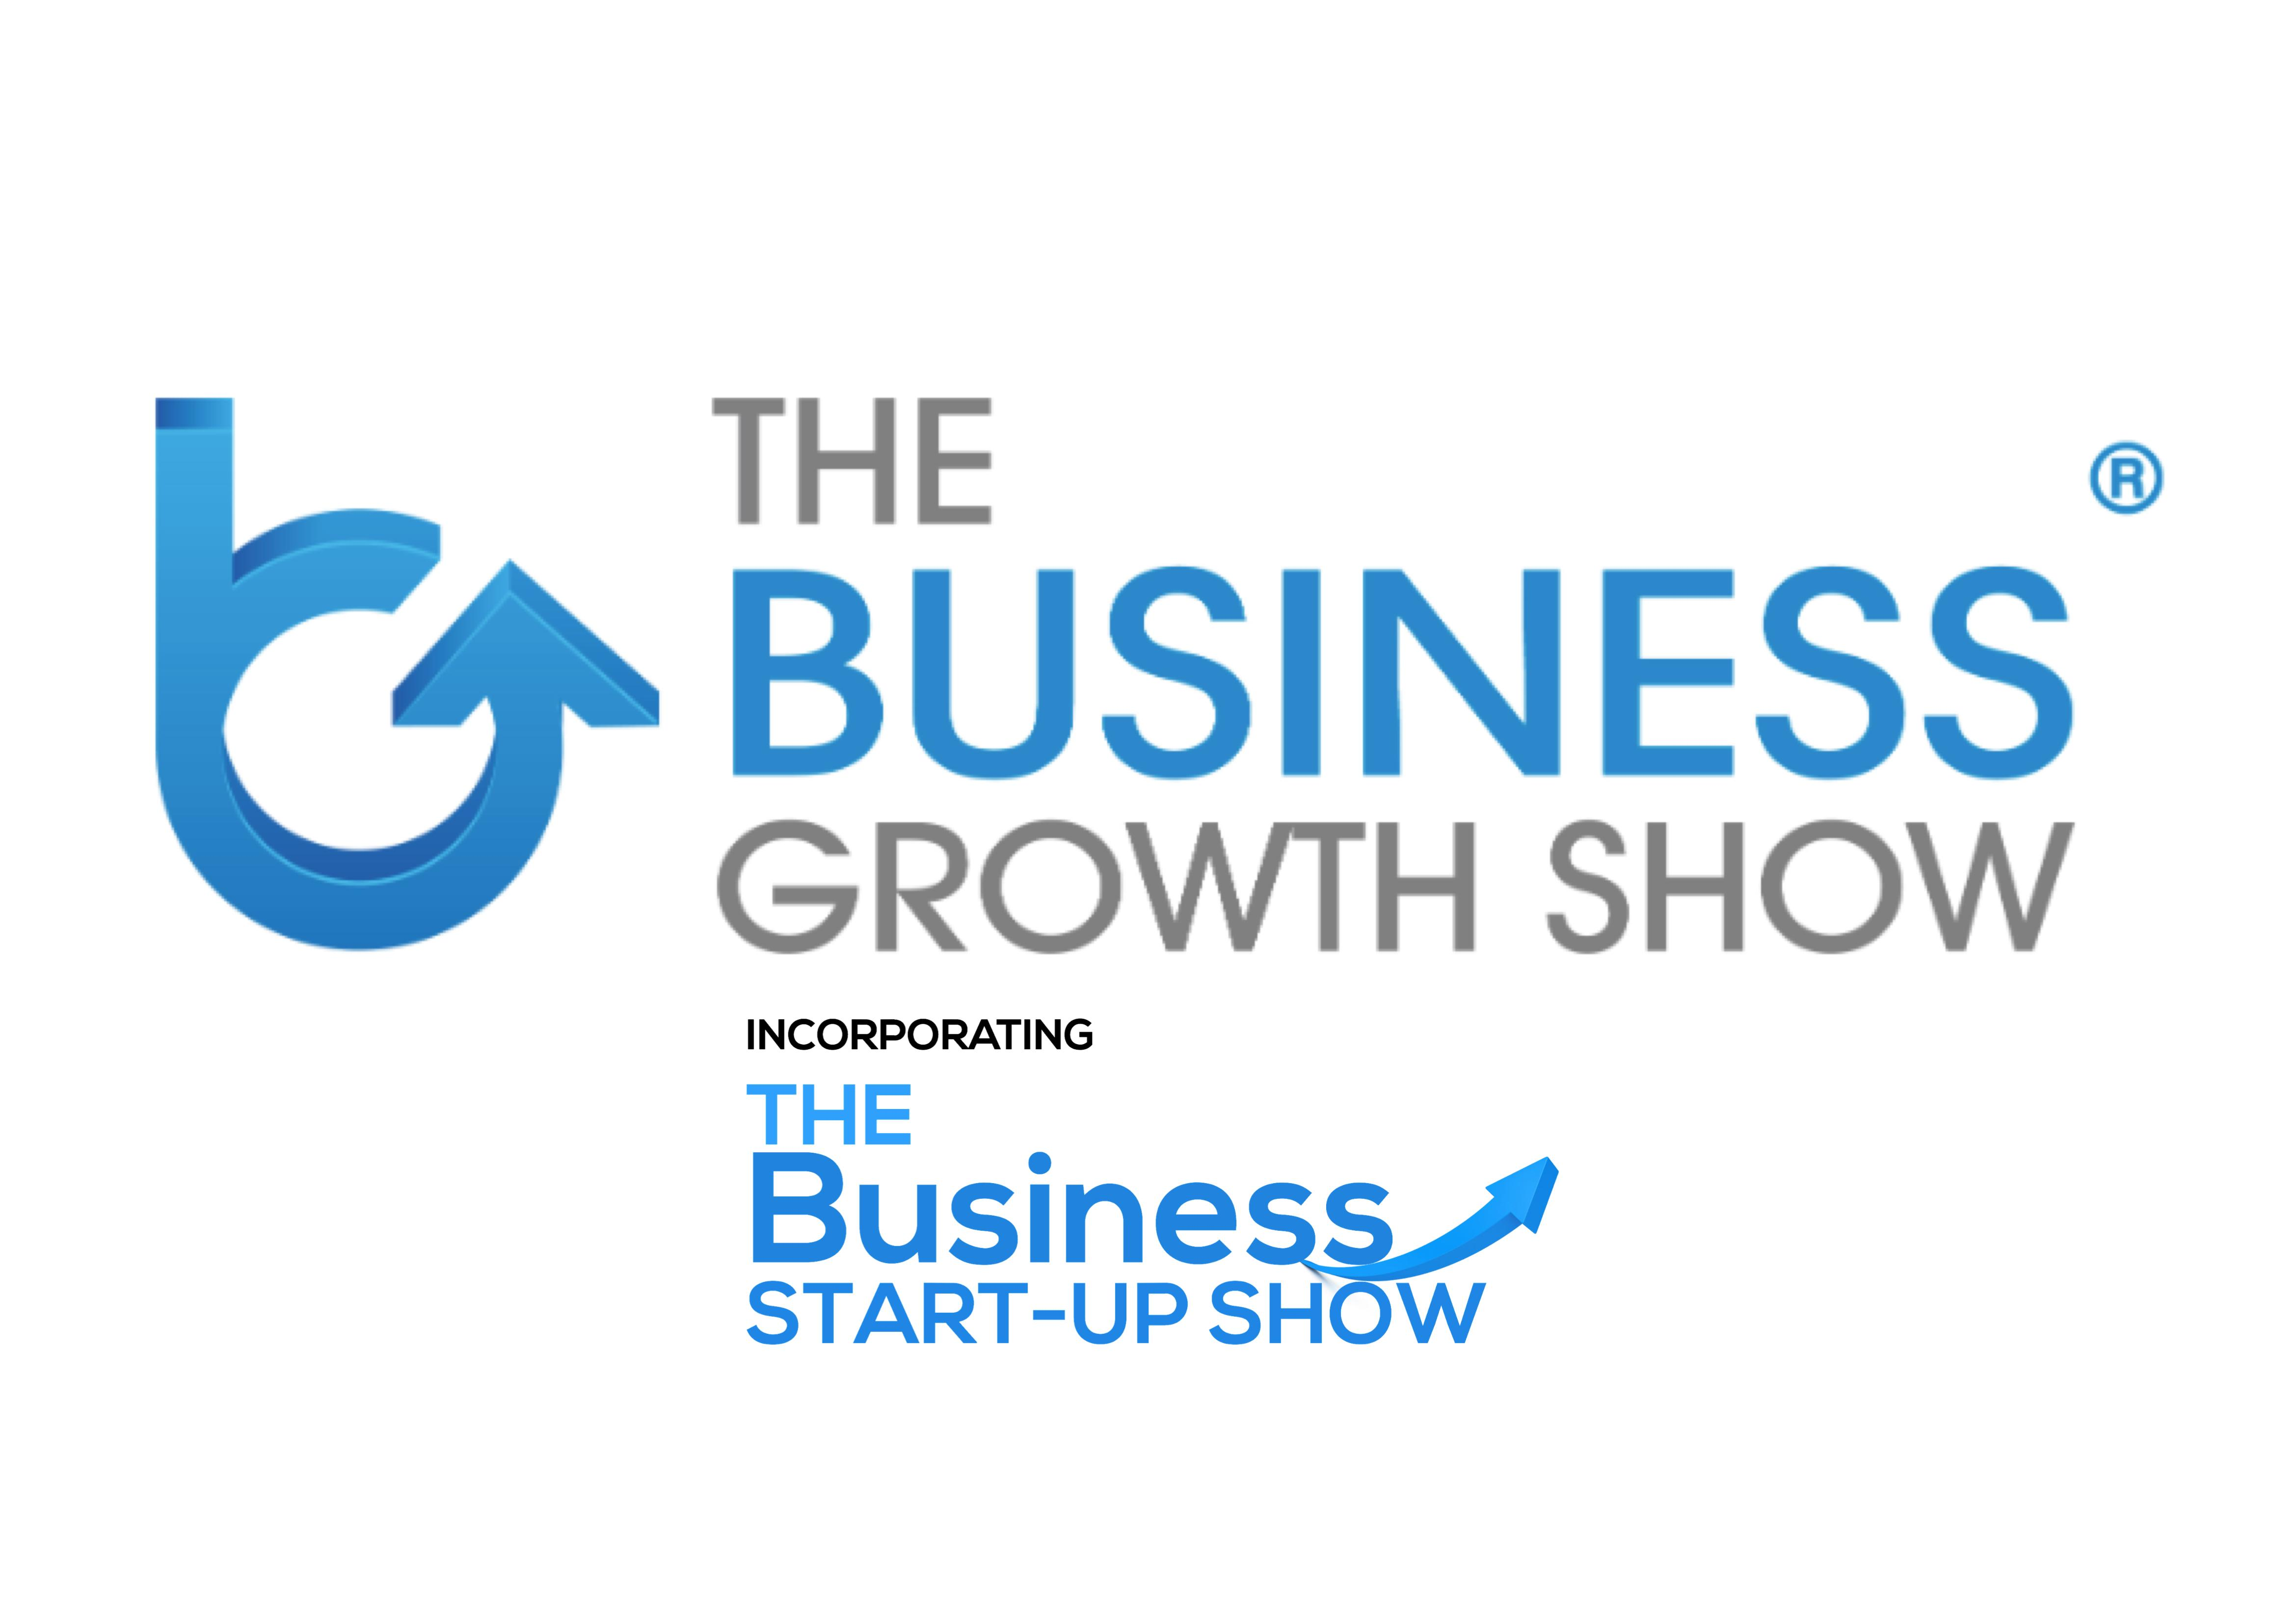 THE BUSINESS GROWTH & START UP SHOW SOLIHULL